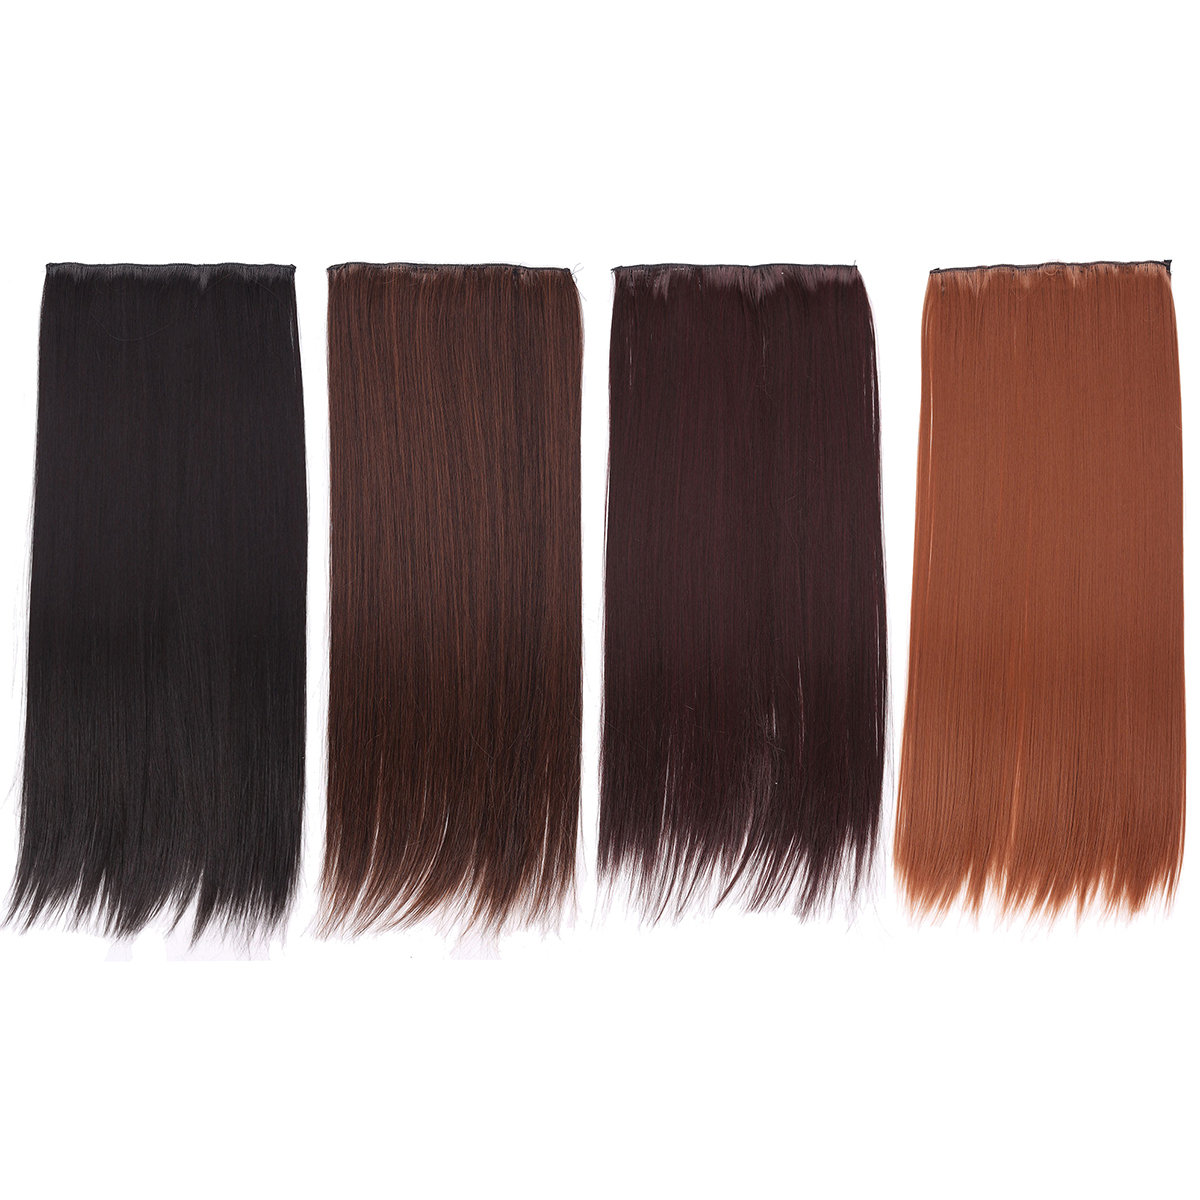 Women Full Head Clip Hair Extensions Long Straight Wig With 5 Clips 4 Colors